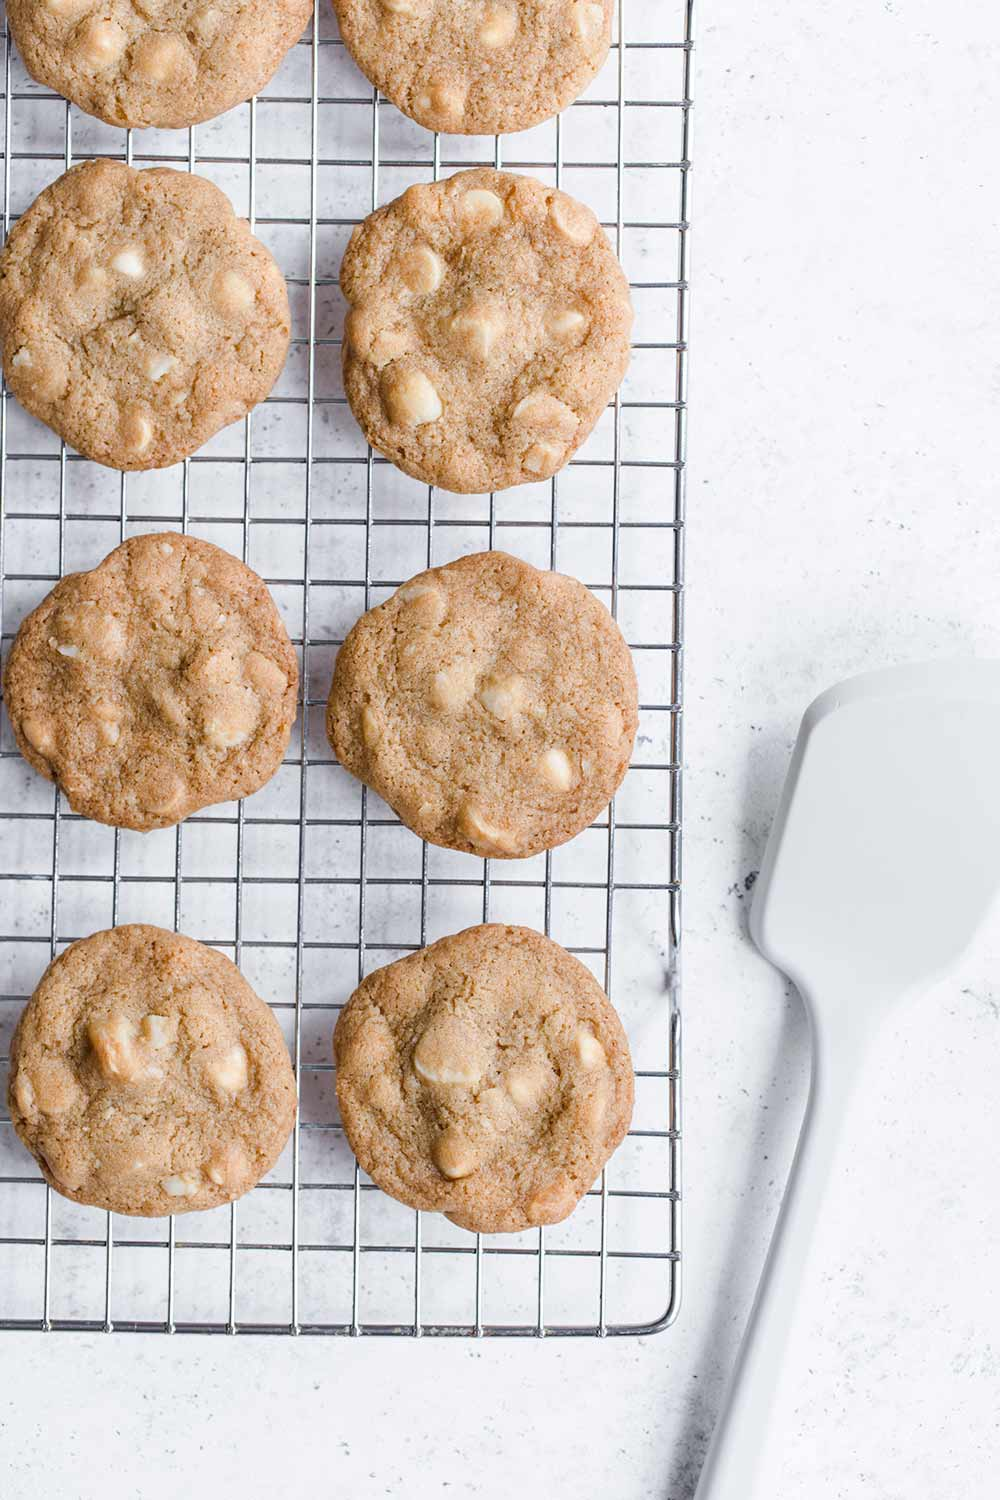 White chocolate macadamia nut cookie recipe cooling on a wire rack